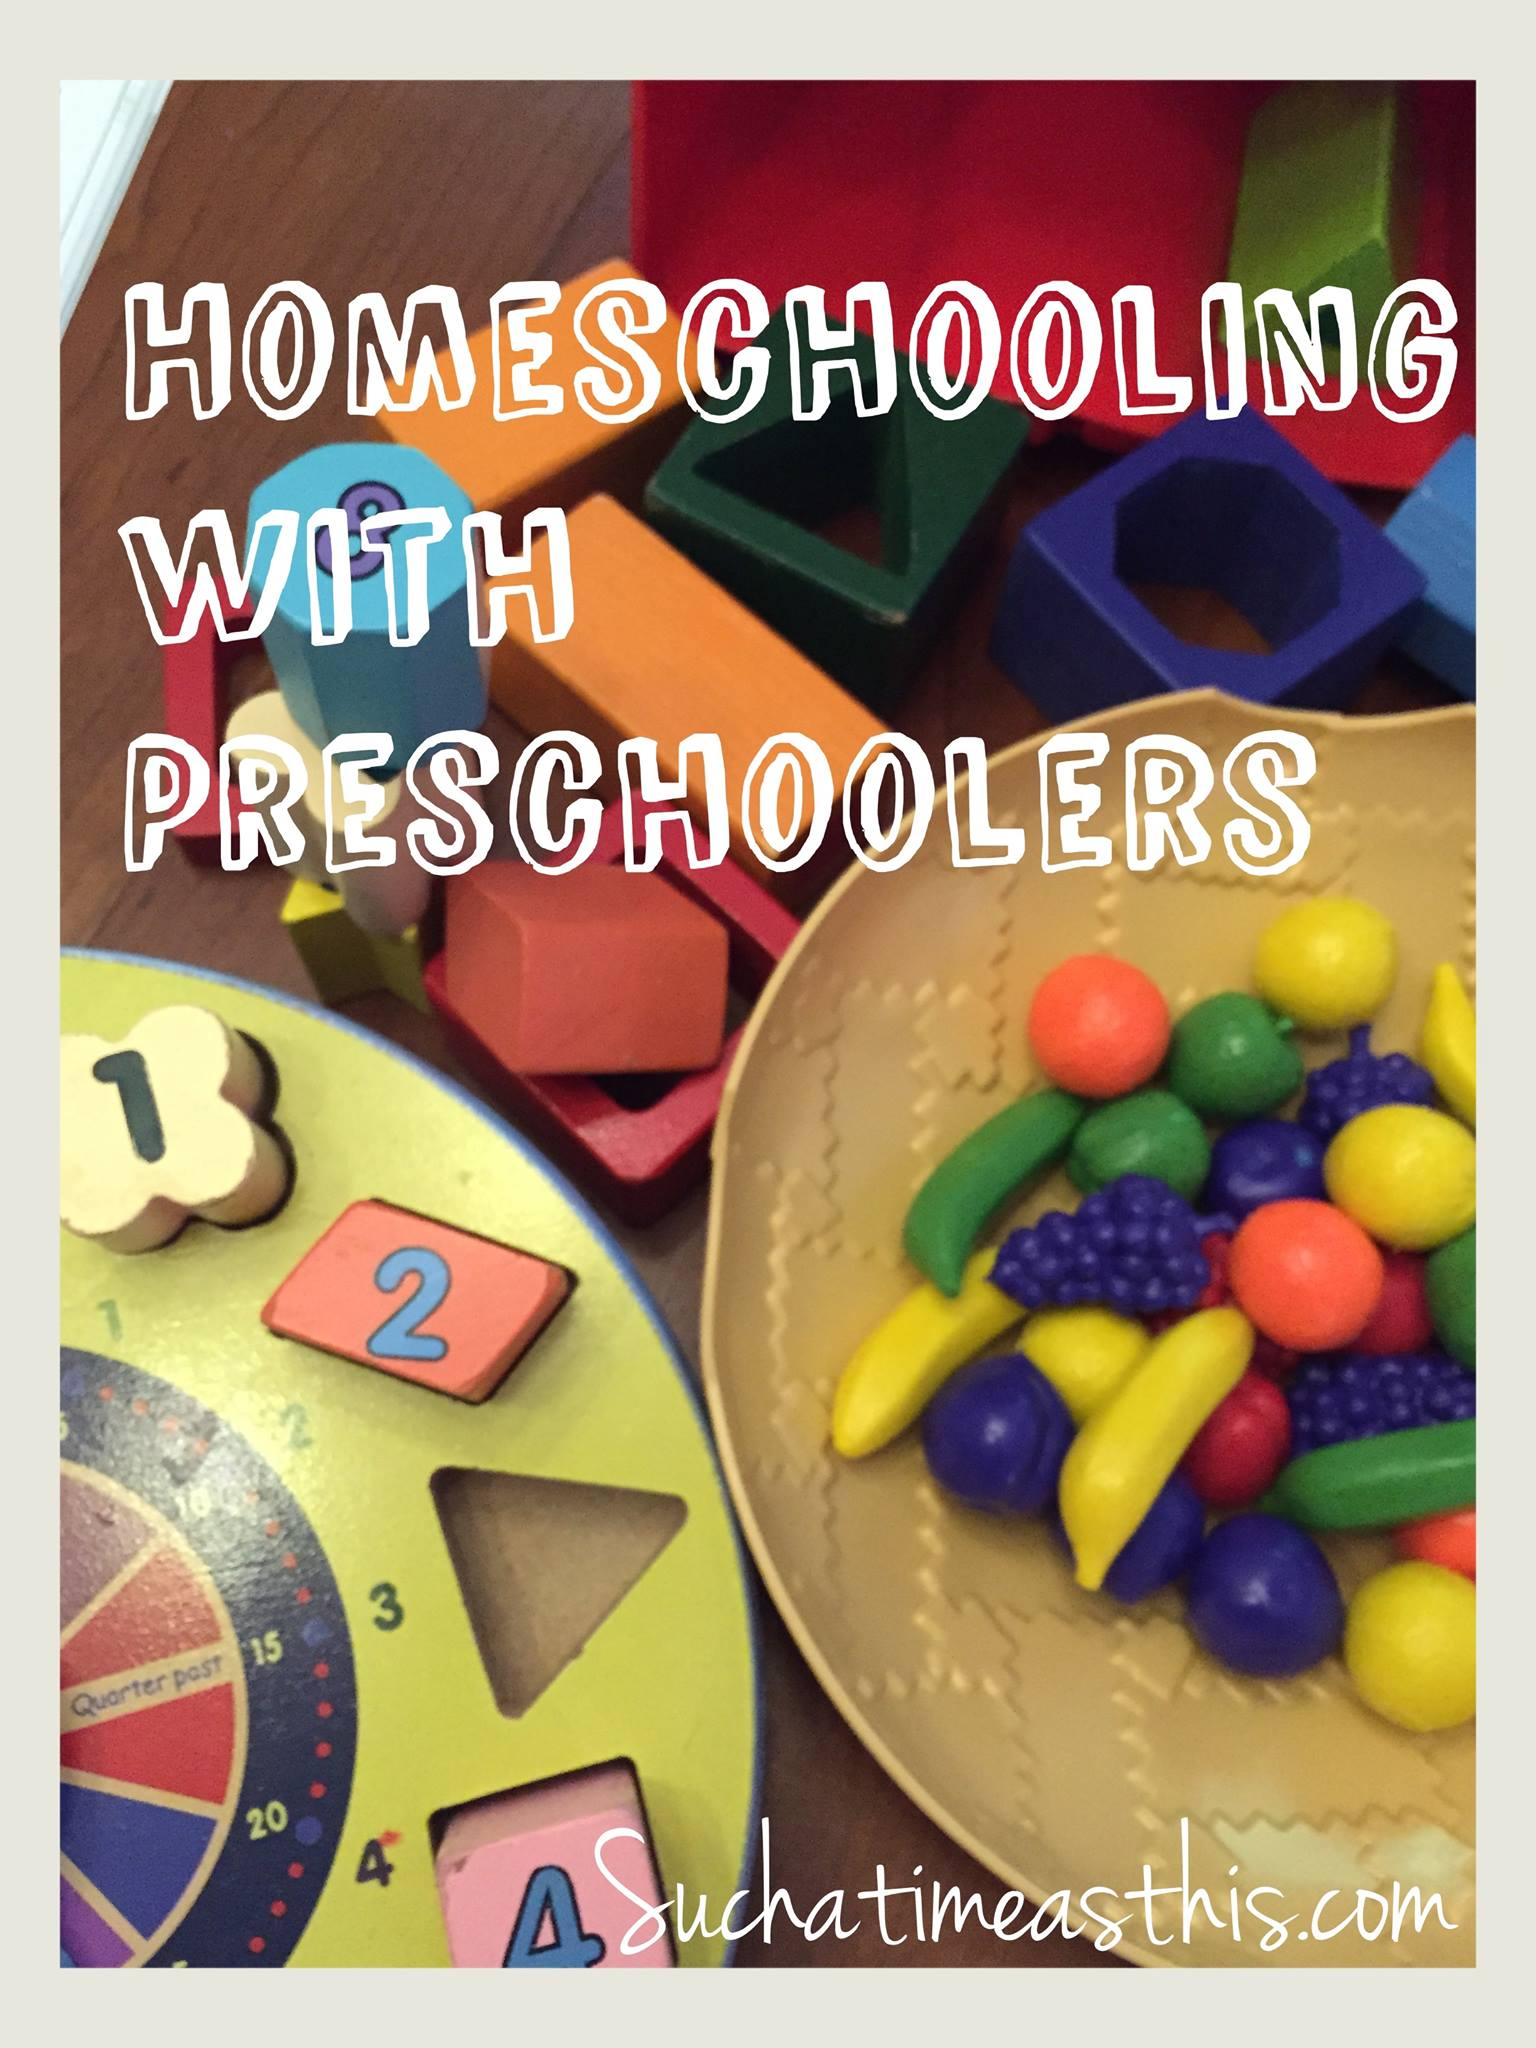 Homeschooling with Preschoolers